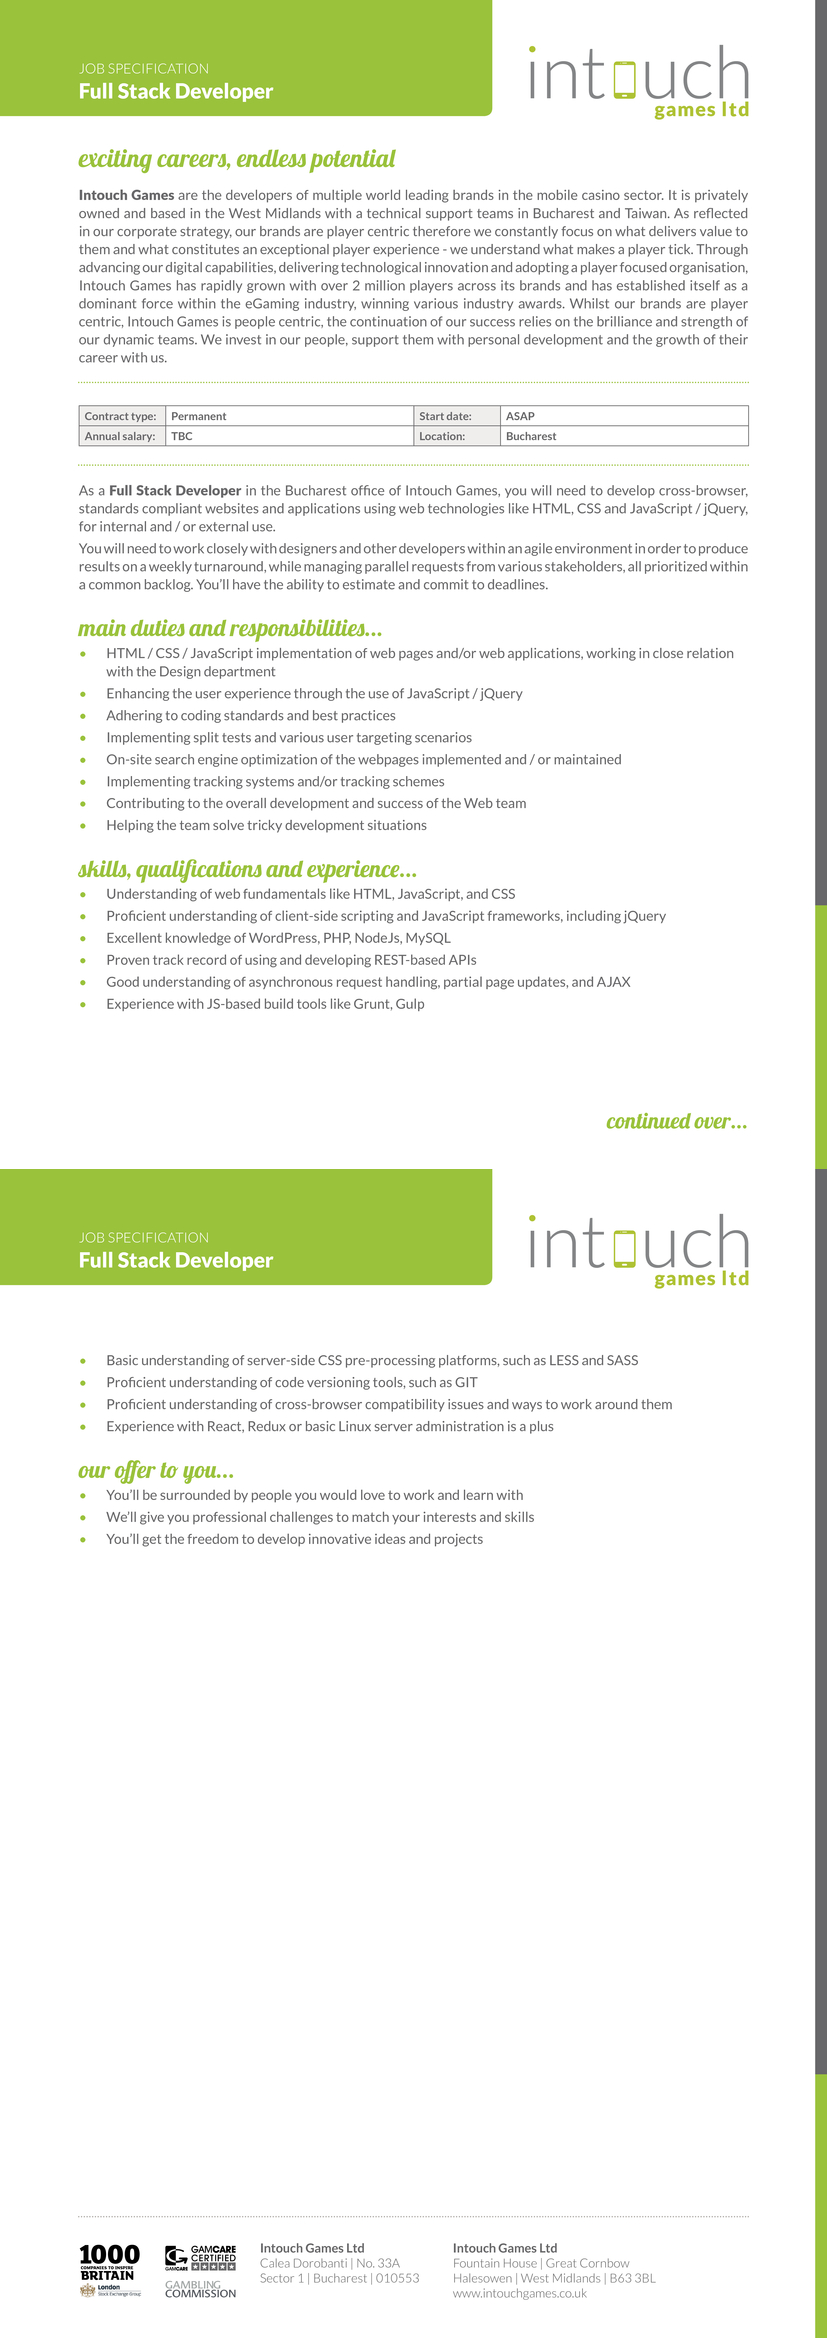 A Full Stack PHP Developer with OO PHP, HTML, CSS, API integration expertise. We will also consider applications from Front End Developers and Back-End Developers with 2-3yrs+ experience. Job Title: Full Stack PHP Developer – LAMP. Location: Bucharest, Romania, Calea Dorobanti, Sector 1, 010553. Salary: €competitive + bonus + benefits. Keywords: PHP, LAMP, MySQL, JavaScript, Web Developer, Full Stack Developer, Back-End, Bucharest, WordPress, CMS.  A Full Stack PHP Developer with OO PHP, HTML, CSS, API integration expertise is highly sought by a multiple award winning, international games software company based in Bucharest who have over 250 employees across 3 international offices in Romania, UK and Taiwan.  In this position, you will have the opportunity to work within our web development team alongside PHP, Front-End Web Developers and Designers for our 4 brand websites; mFortune, Pocketwin, Mr Spin, Dr Slot and be immersed in the latest technologies in a team of outstanding in-house software developers.  The right candidate will also develop, create and maintain a variety of PHP scripts that power our back-office systems for our suite of online games across our 4 brands! This opportunity would ideally suit someone with excellent LAMP stack expertise who is looking to join a multiple award winning game software company with exponential growth plans over the next few years as we continue to adapt, grow and improve our online and mobile based games!  The projects will be challenging and varied and as a company we do everything in-house and this will give you the opportunity to work in a highly skilled team at a company that has been established for over 25 years and with an annual turnover of over £60mn+.  Key skills required:  Excellent OO PHP development experience. Excellent HTML(5), CSS(3), JavaScript/JQuery. Good knowledge of MySQL and/or SQL Server. Excellent LAMP stack skills. WordPress skills.  Nice to have, but not essential skills:   NoSQL database experi